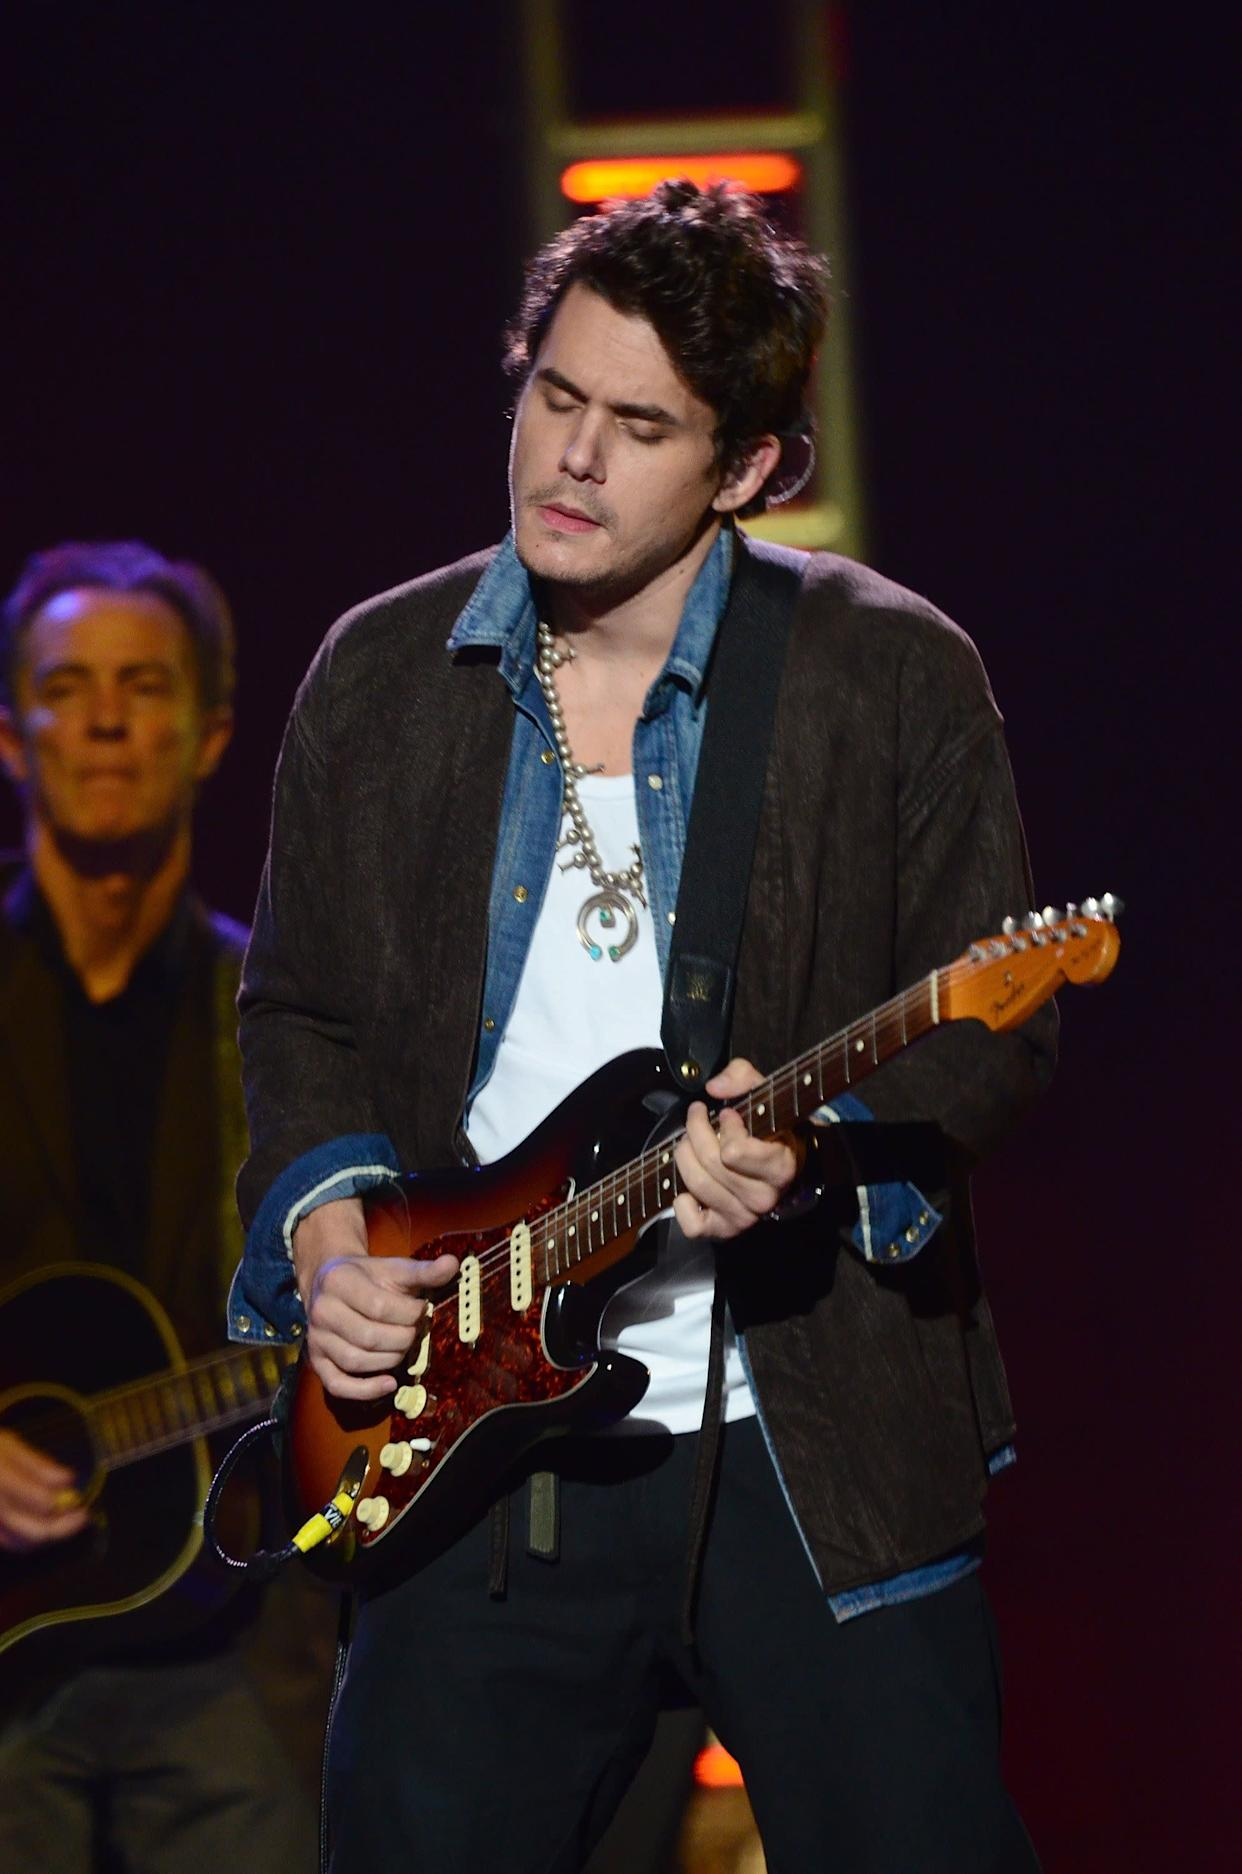 """Remember when Mayer couldn't keep his mouth shut about his sex life with ex-girlfriend, Jessica Simpson? """"Sexually it was crazy. That's all I'll say,"""" <a href=""""http://www.usmagazine.com/celebrity-news/news/john-mayer-jessica-simpson-was-crazy-2010102"""" rel=""""nofollow noopener"""" target=""""_blank"""" data-ylk=""""slk:he told Playboy in 2010"""" class=""""link rapid-noclick-resp"""">he told Playboy in 2010</a>, """"It was like napalm, sexual napalm. Did you ever say, 'I want to quit my life and just f**king snort you? If you charged me $10,000 to f**k you, I would start selling all my s**t just to keep f**king you?'"""""""